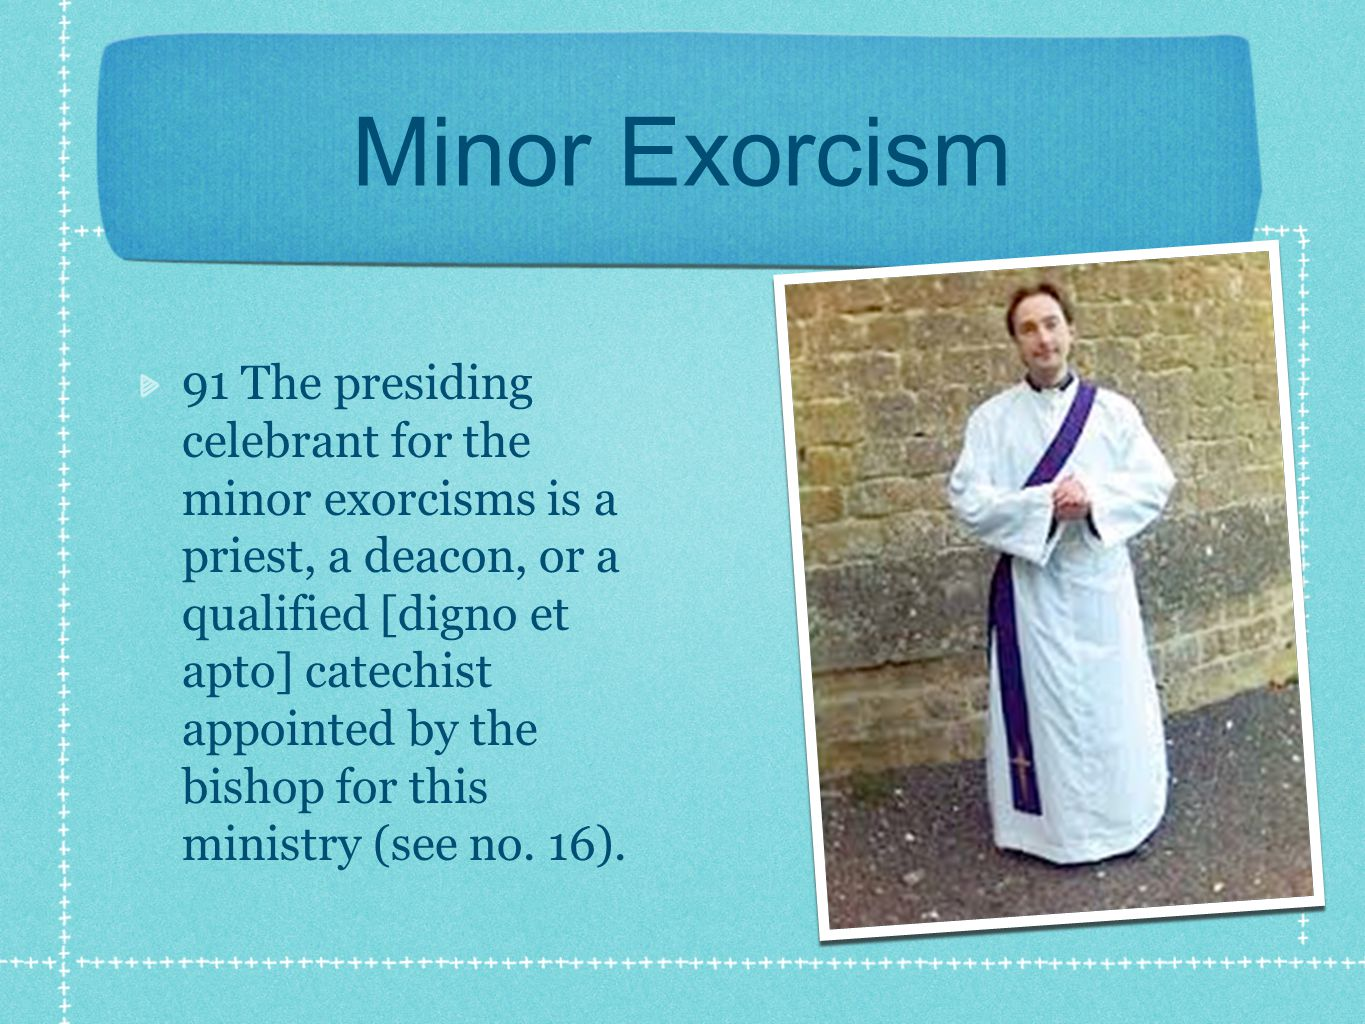 Minor Exorcism 91 The presiding celebrant for the minor exorcisms is a priest, a deacon, or a qualified [digno et apto] catechist appointed by the bishop for this ministry (see no.